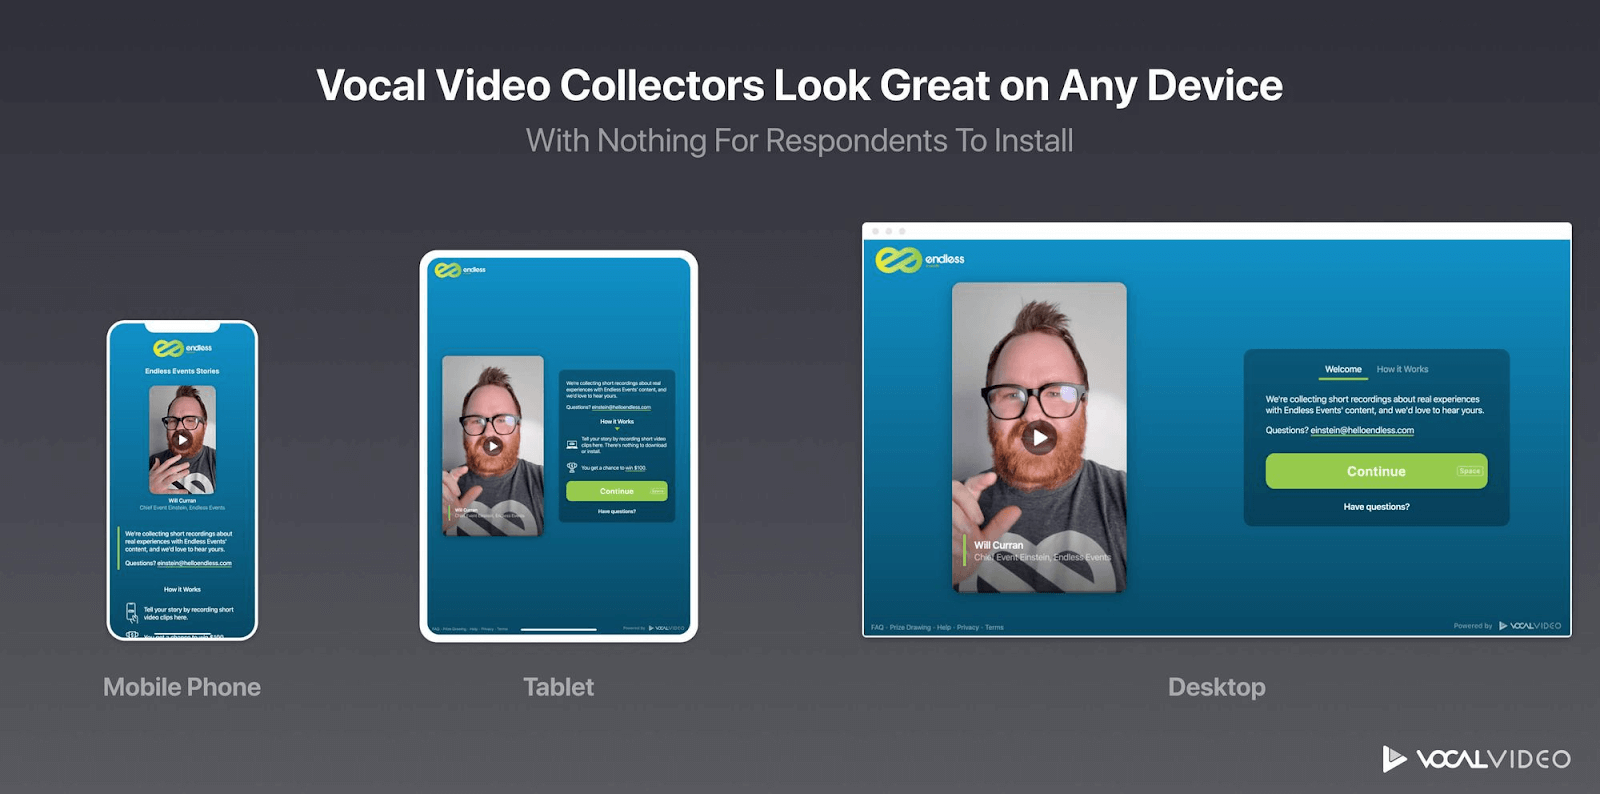 Vocal Video Collectors Look Great on Any Device: With nothing for respondents to install